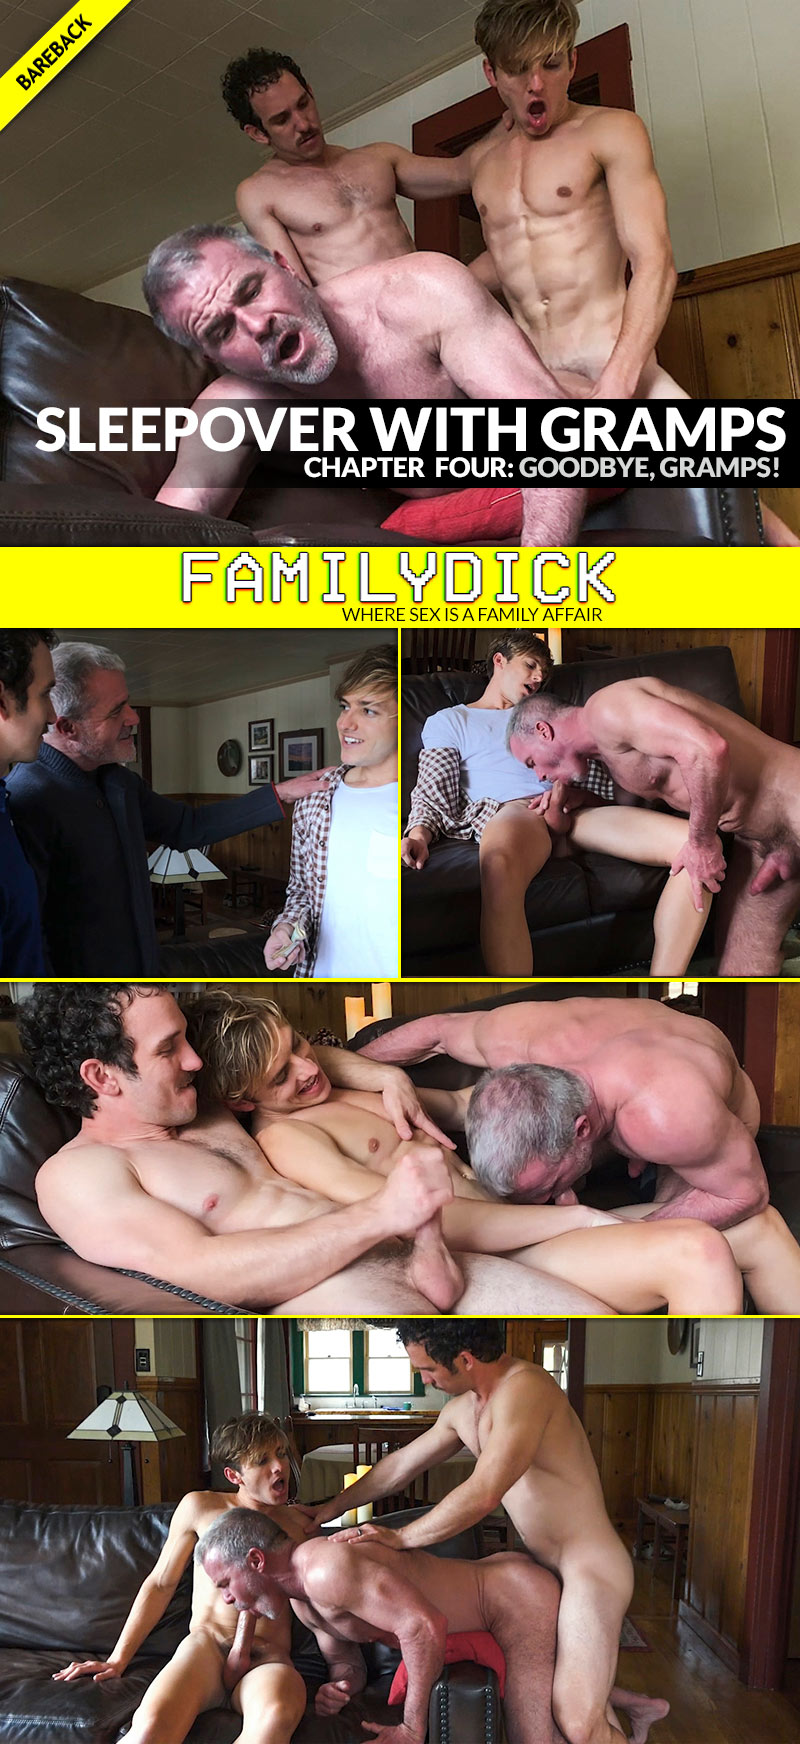 Sleepover With Gramps: Goodbye, Gramps! (with Dale Savage, Bar Addison and Greg McKeon) at FamilyDick